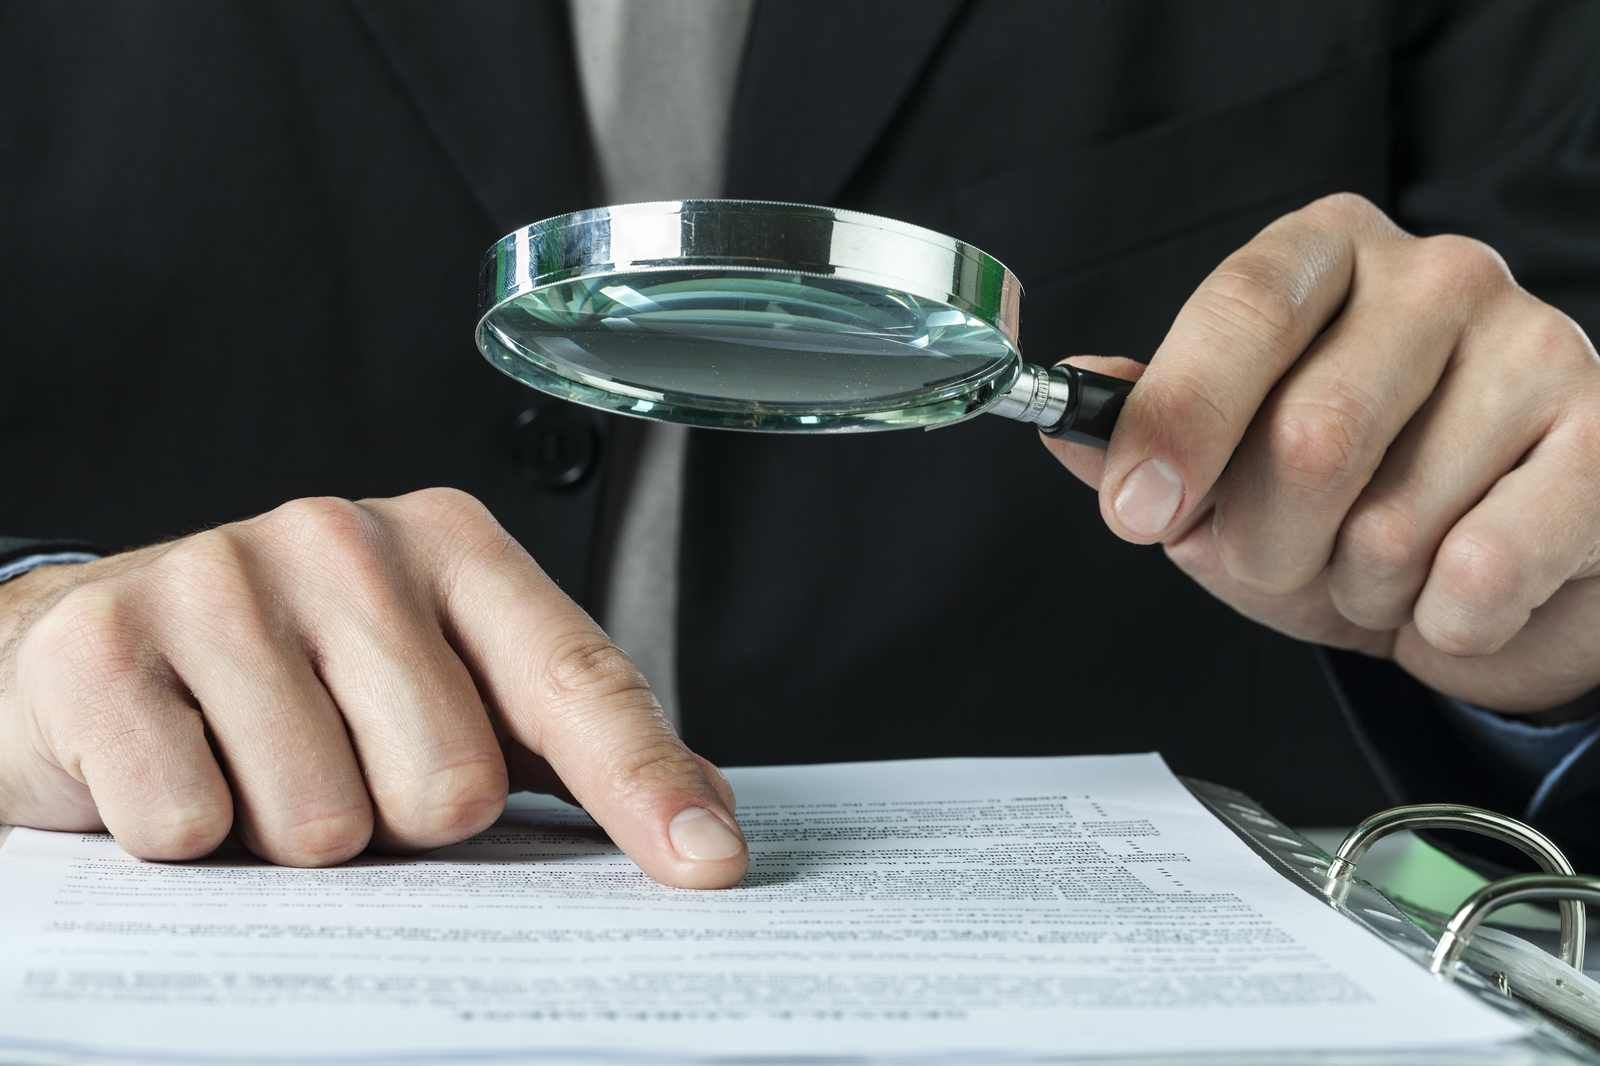 Forensic Audit Market Top 5 Company Profiles Analysis 2019